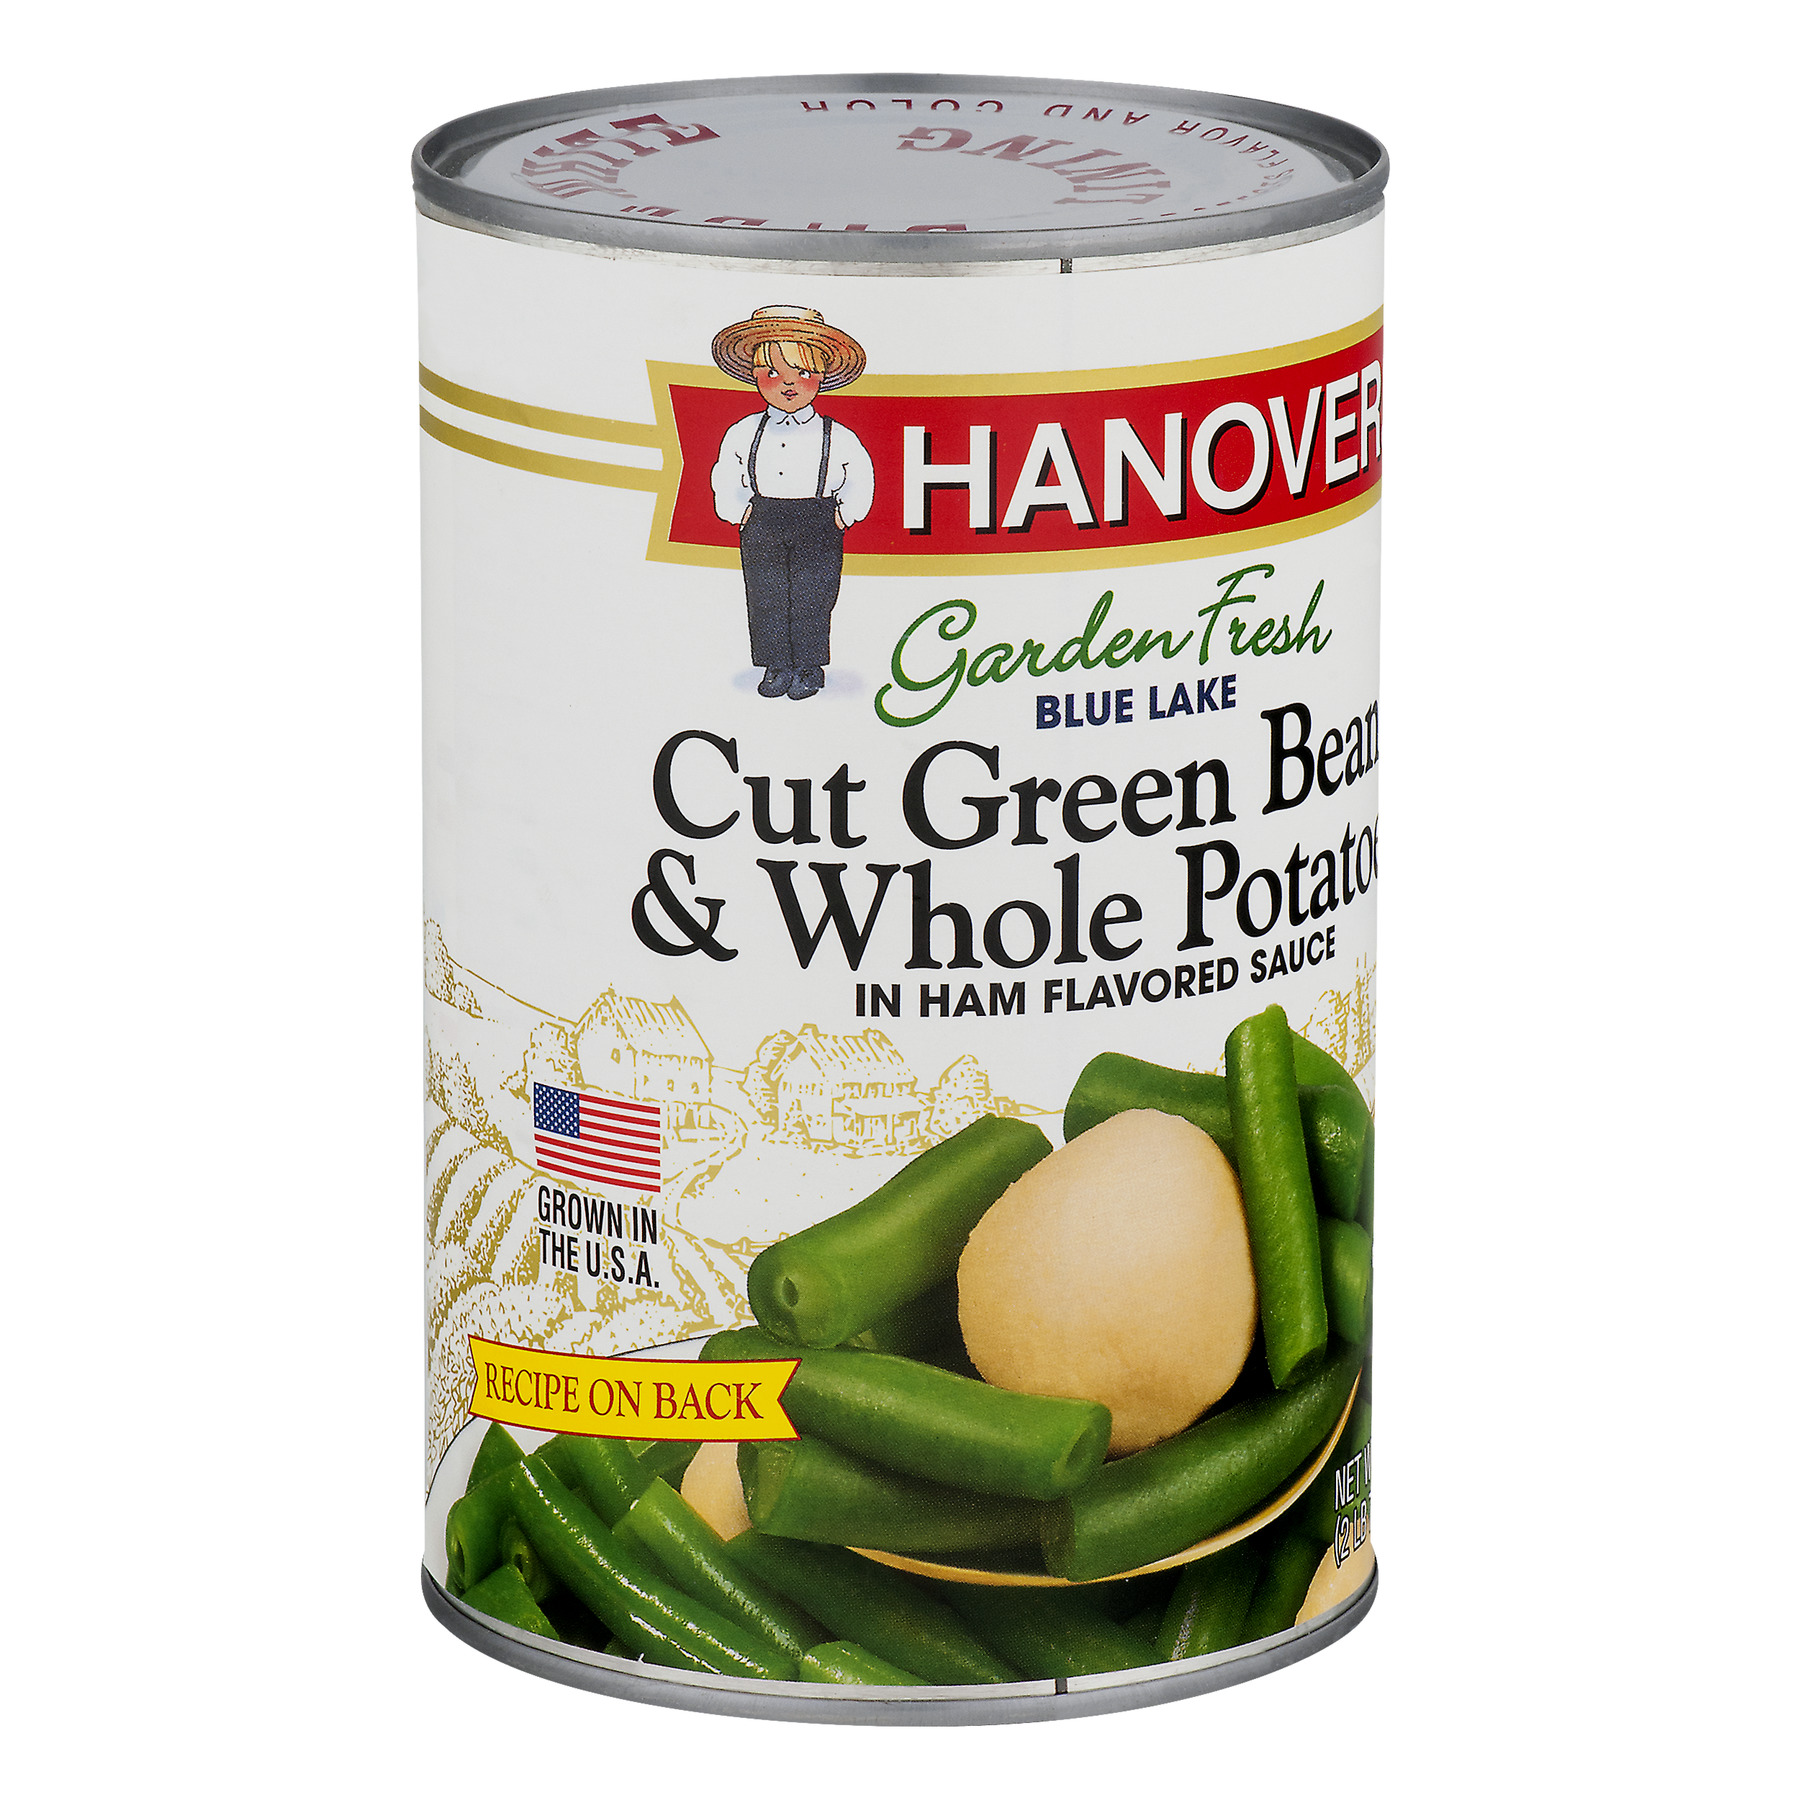 Hanover Garden Fresh Blue Lake Cut Green Beans & Whole Potatoes In Ham Flavored Sauce, 39 Oz